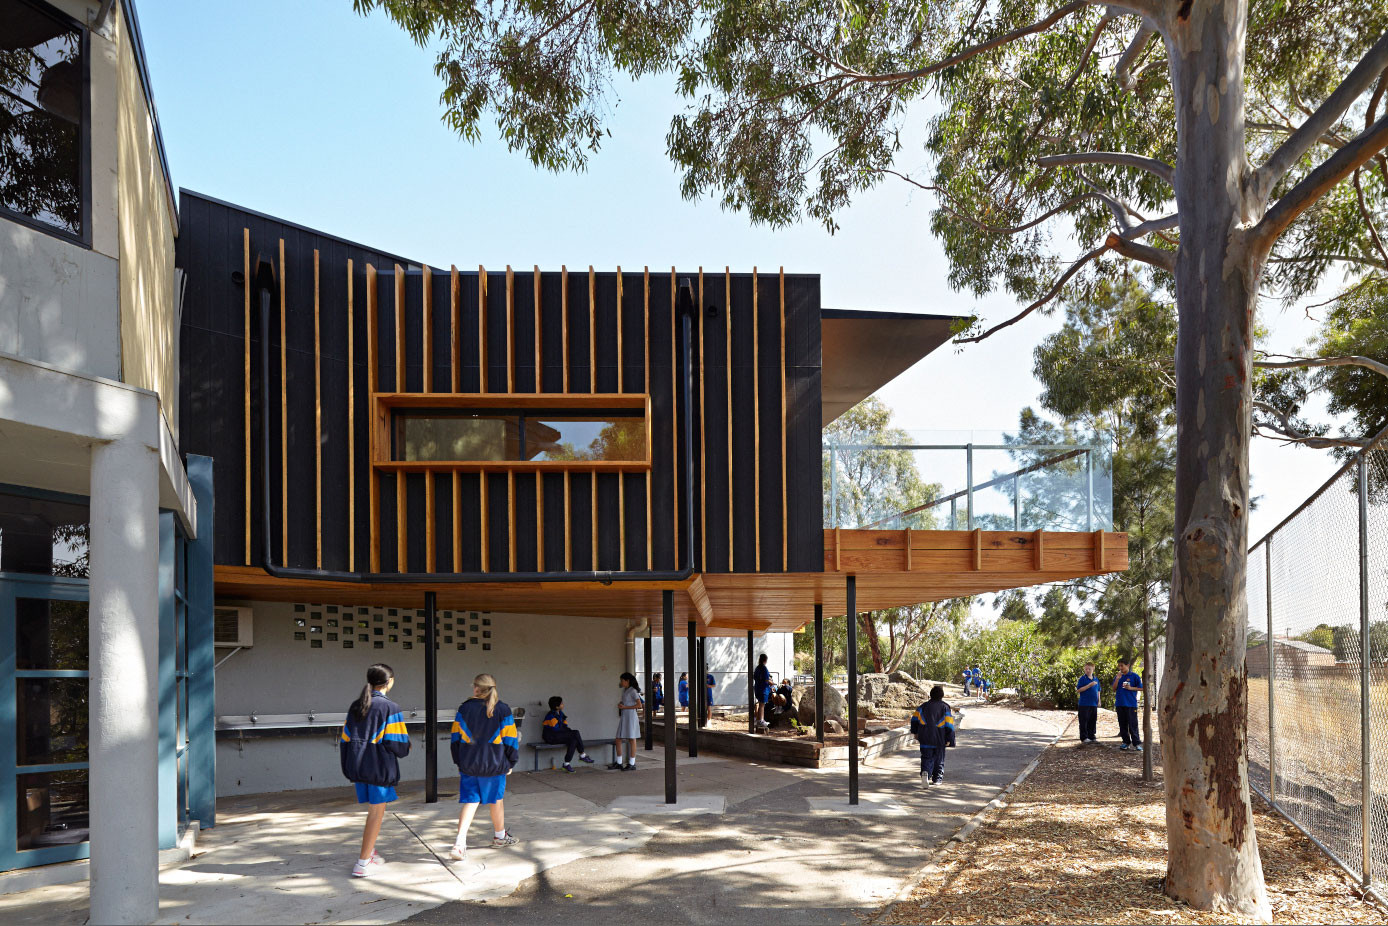 Renovation and Extension At St Monica's College / Branch Studio Architects, © Nils Koenning